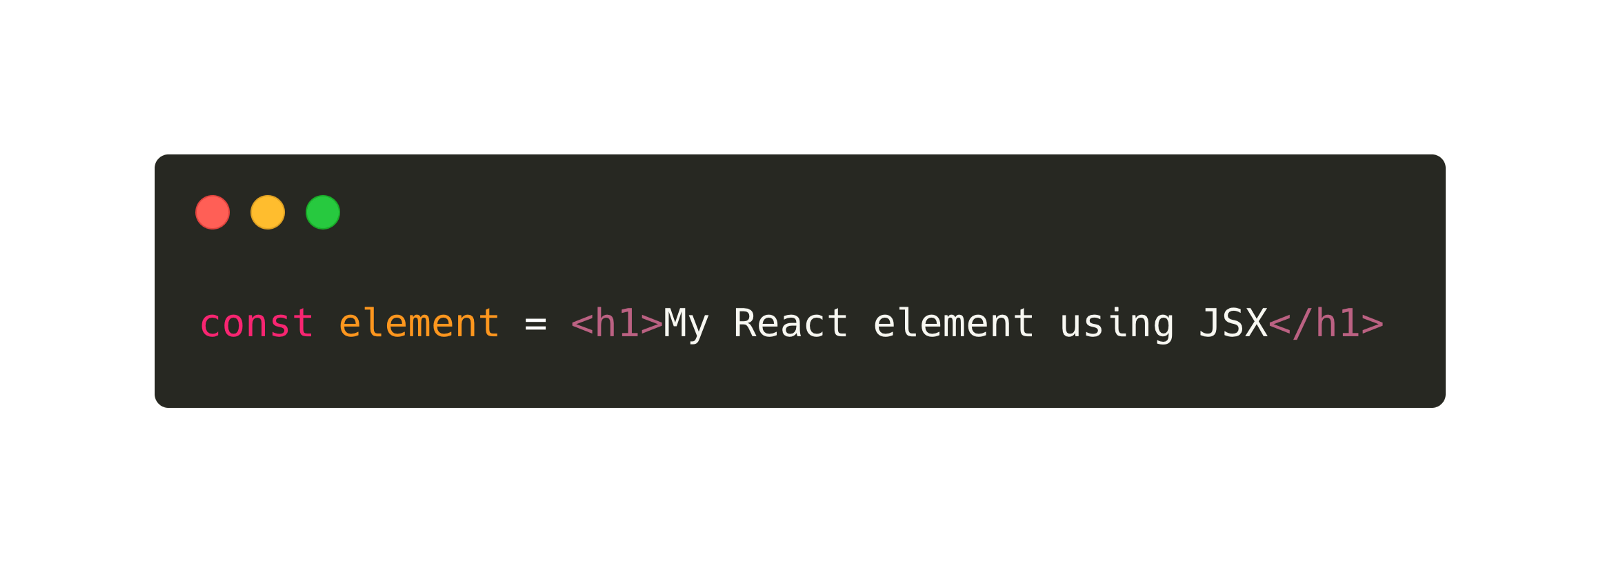 Image shows code with 'const element = <h1>My React element using JSX</h1> '